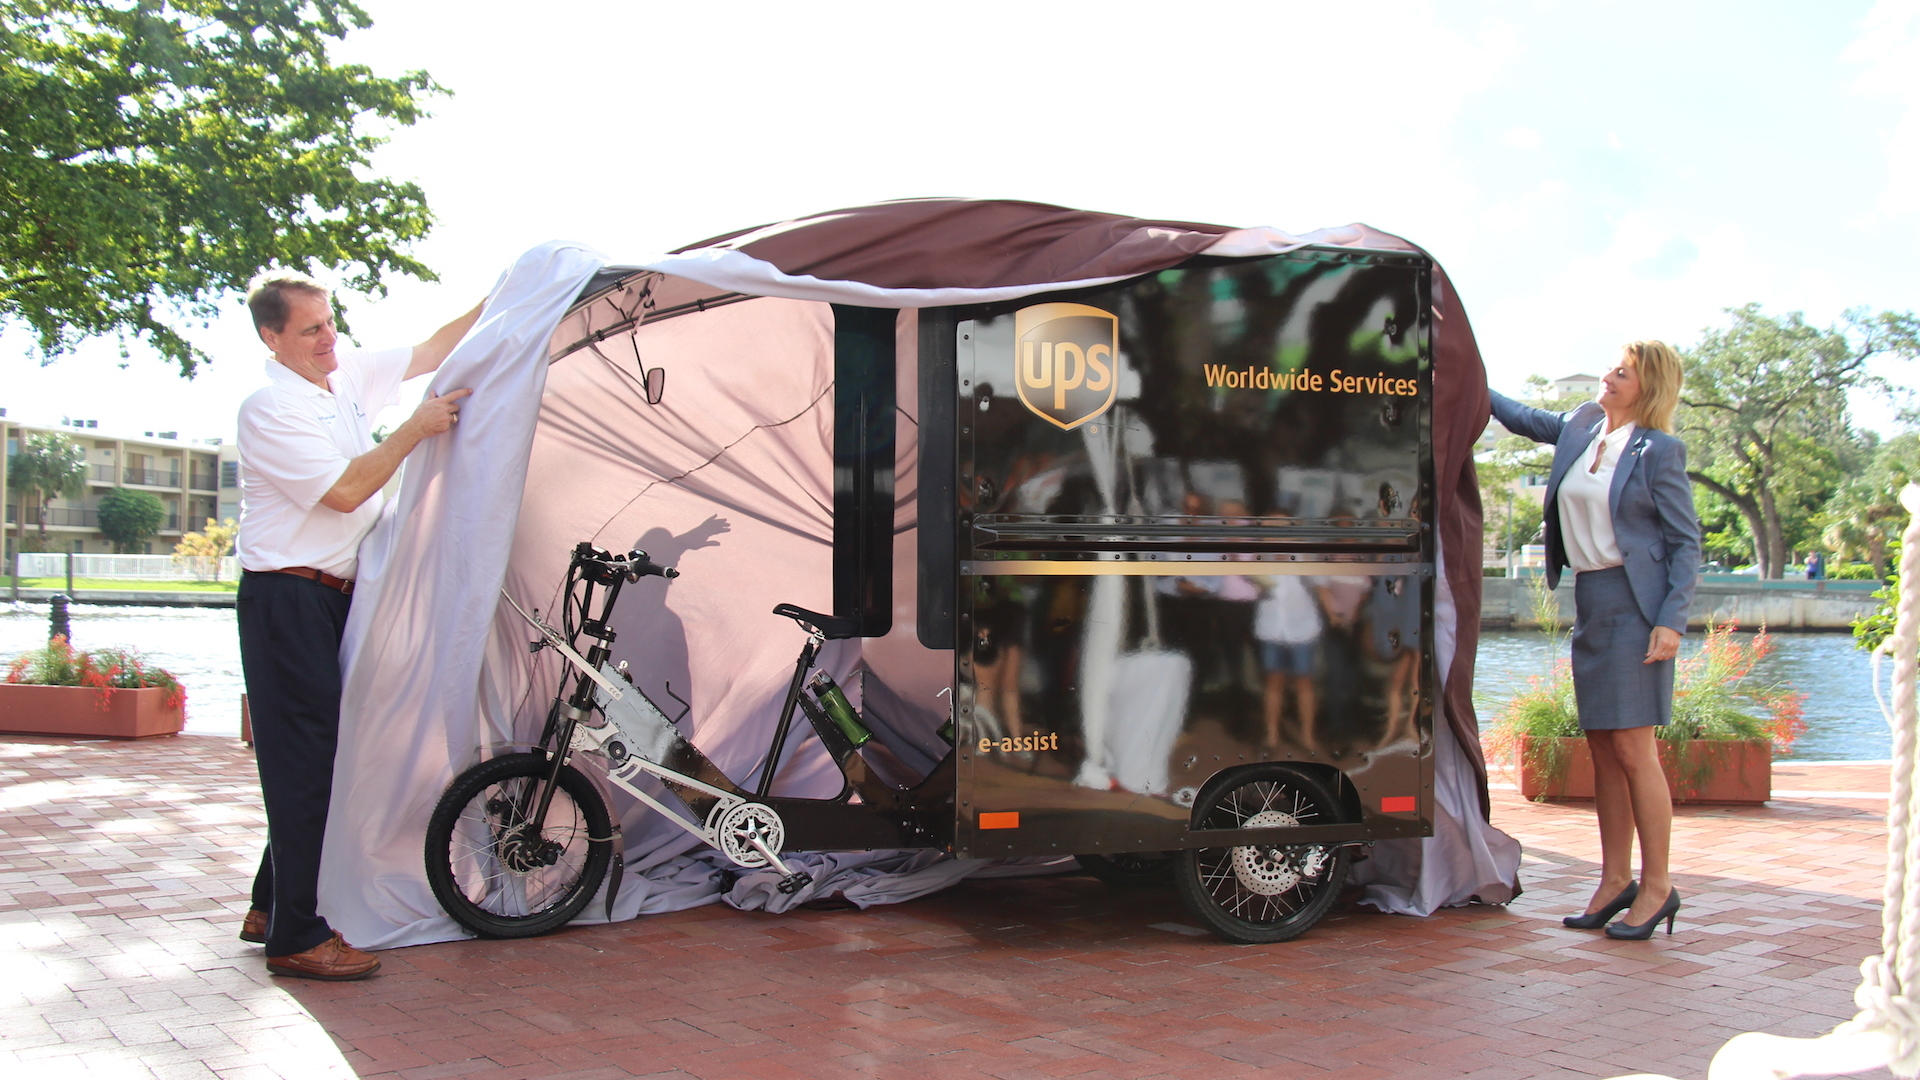 UPS electric trike launch in Fort Lauderdale, Florida